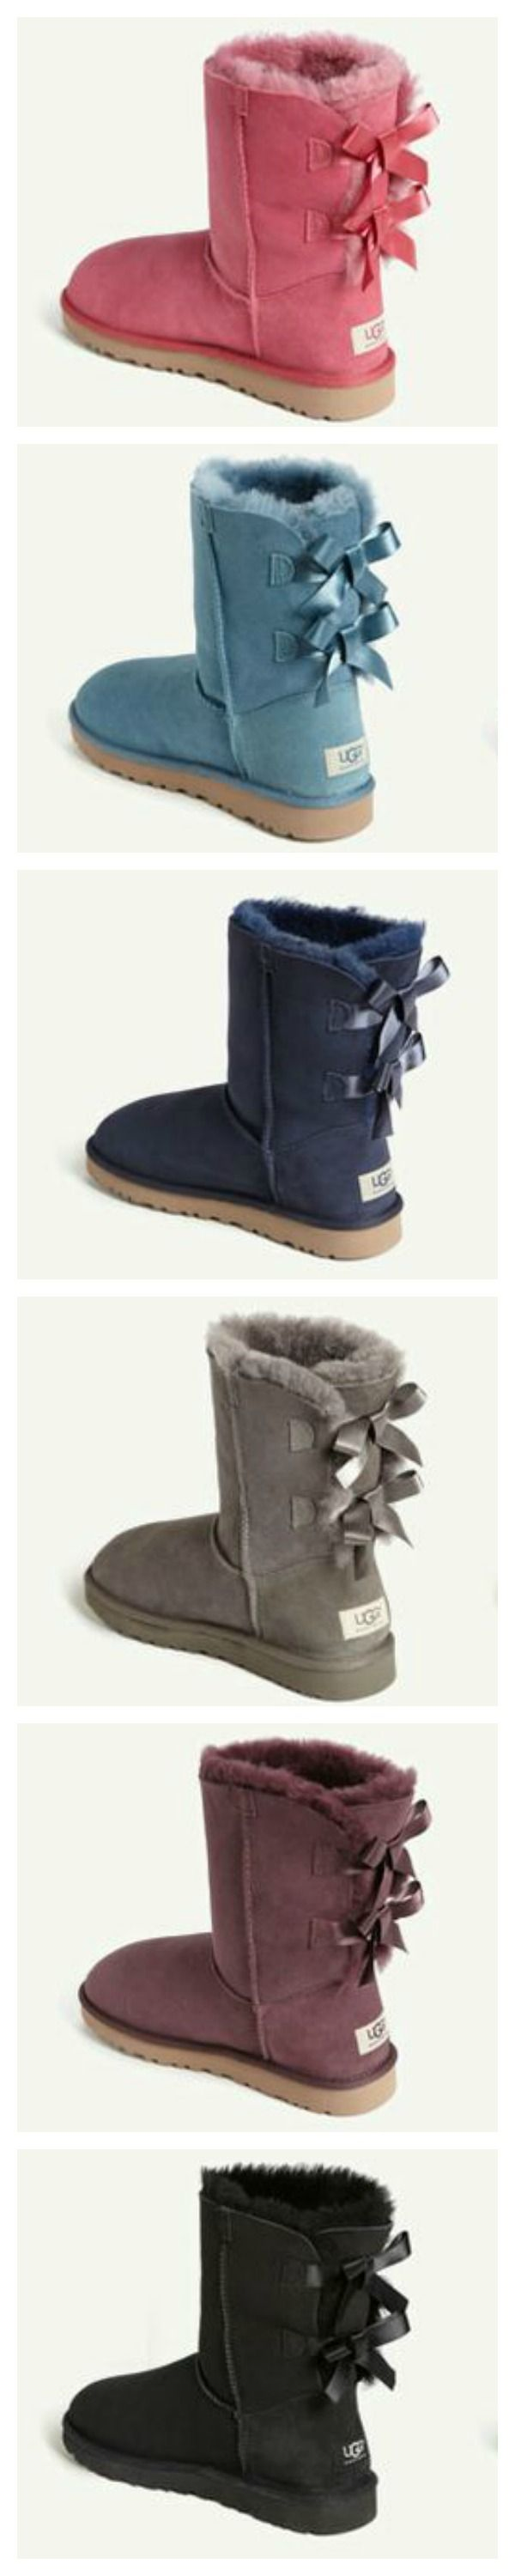 I want all of these!:)